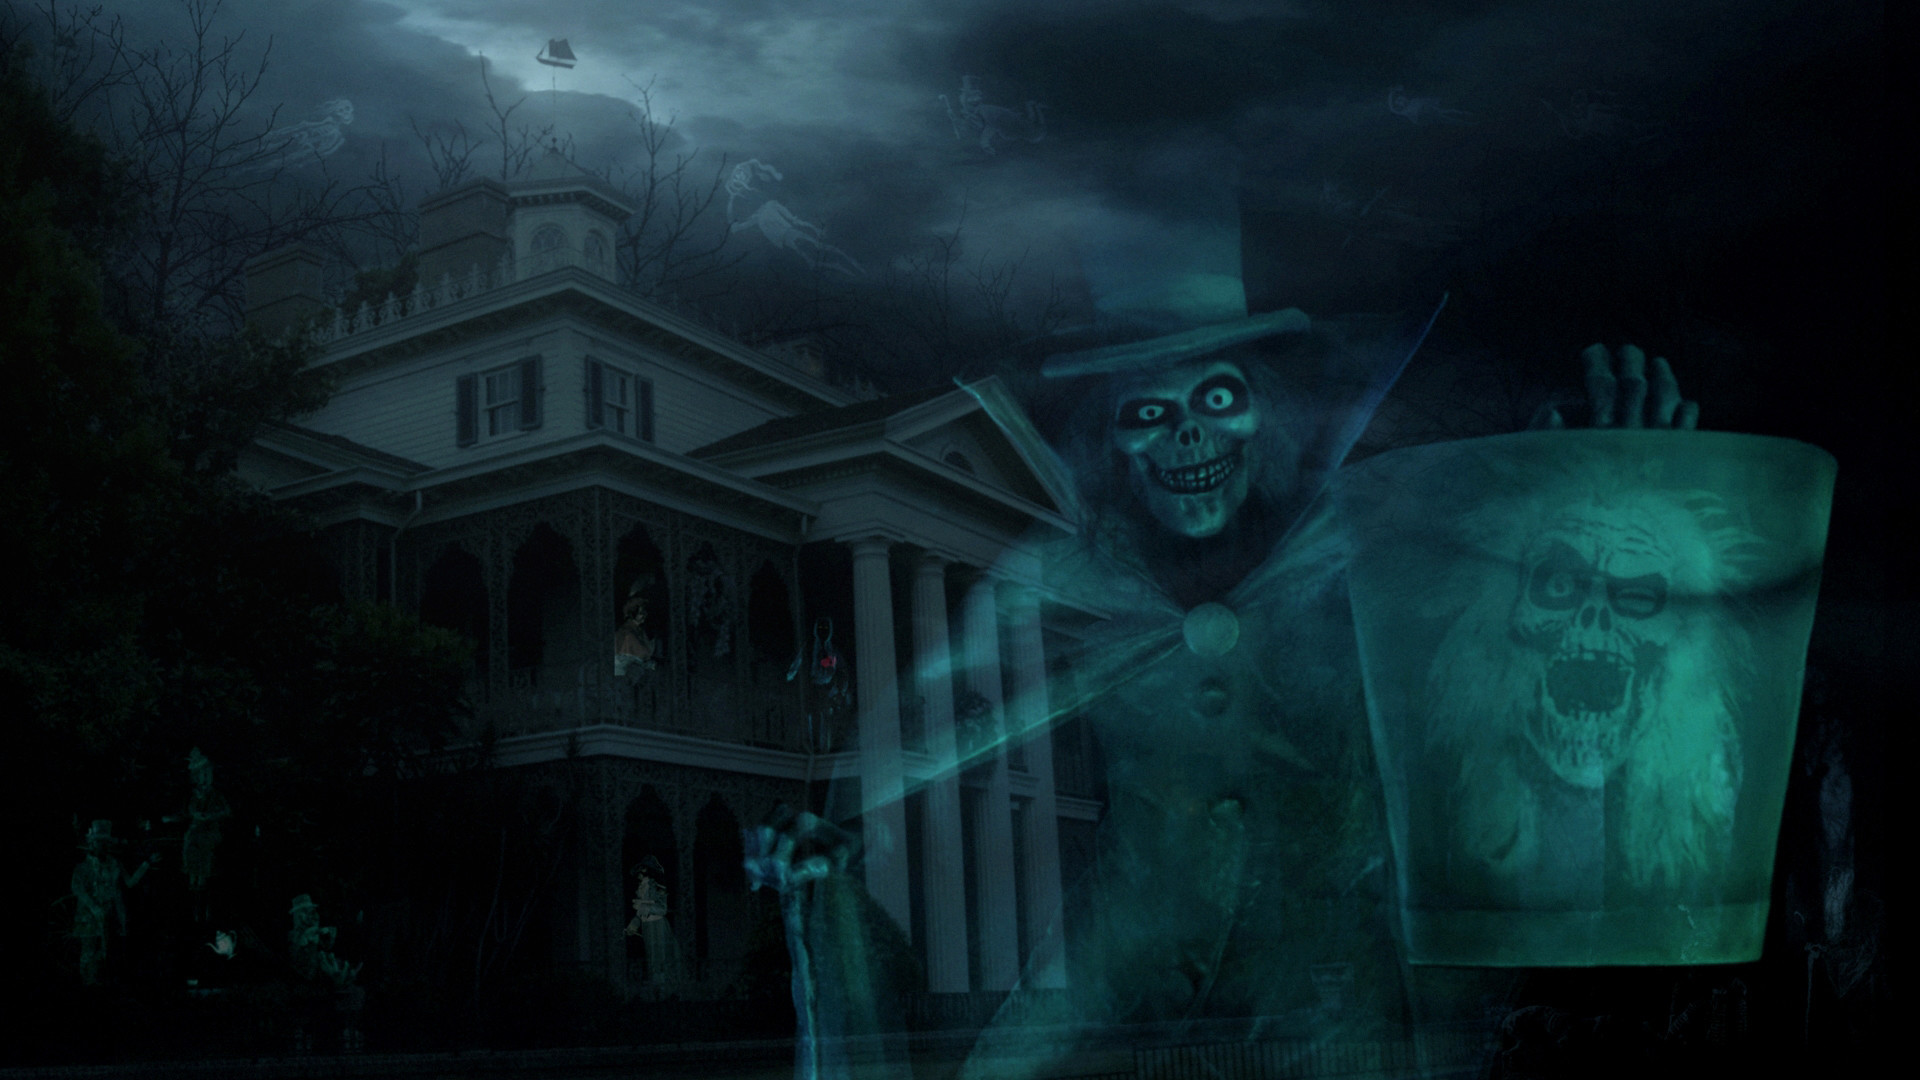 1920x1080 Wallpapers For > Haunted House Wallpapers Hd